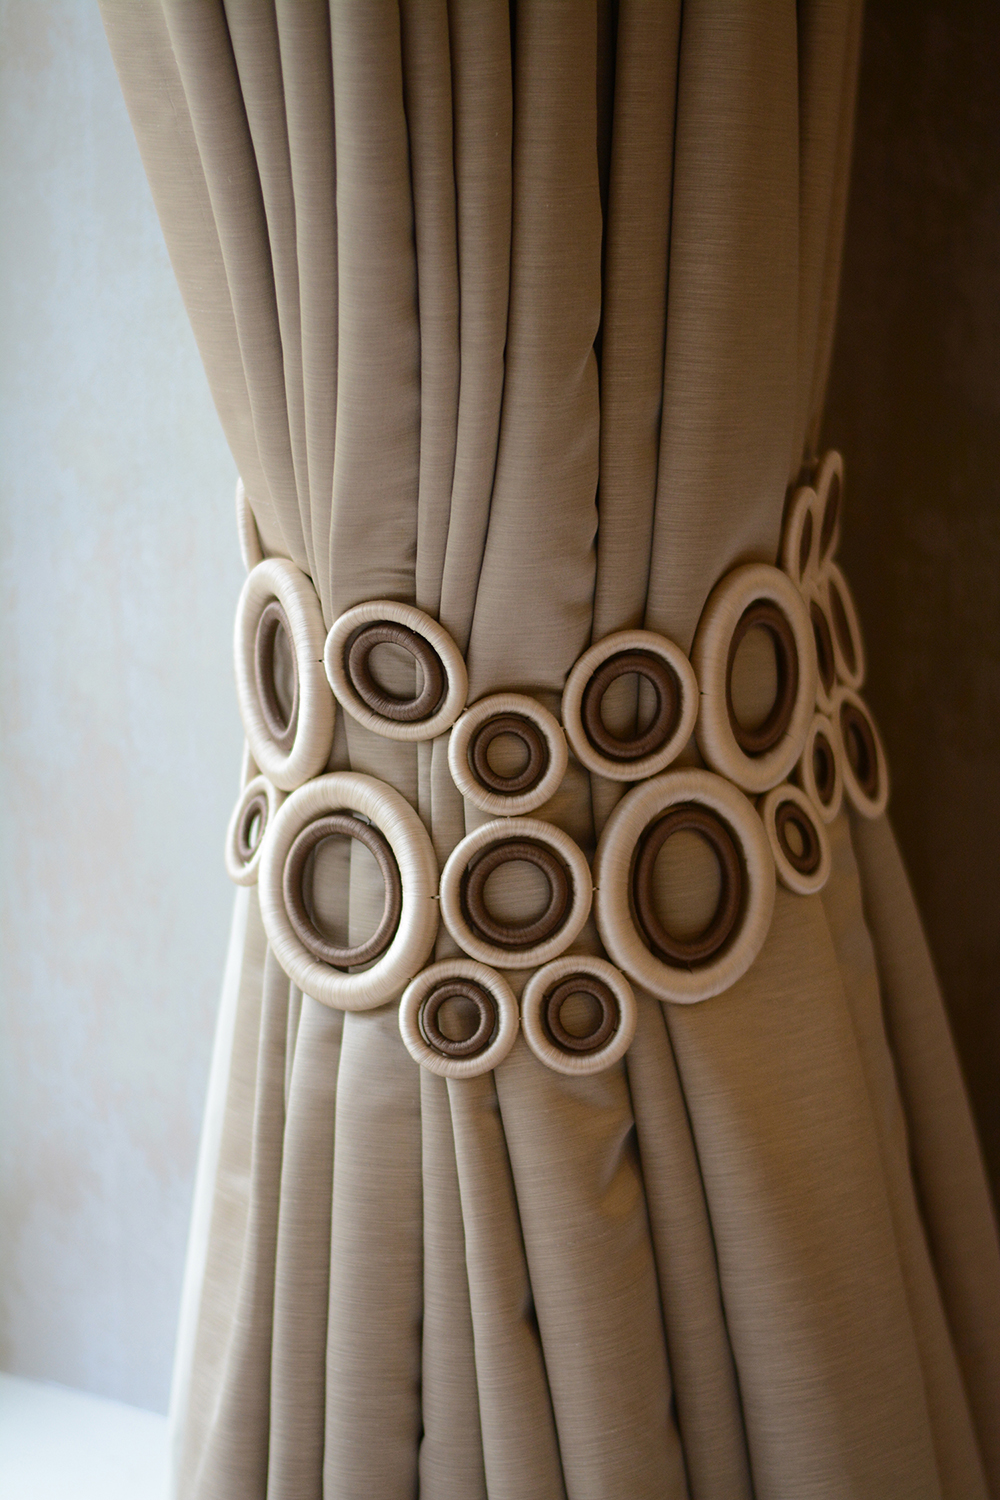 interiors-curtains-detail-helen-rayner.JPG